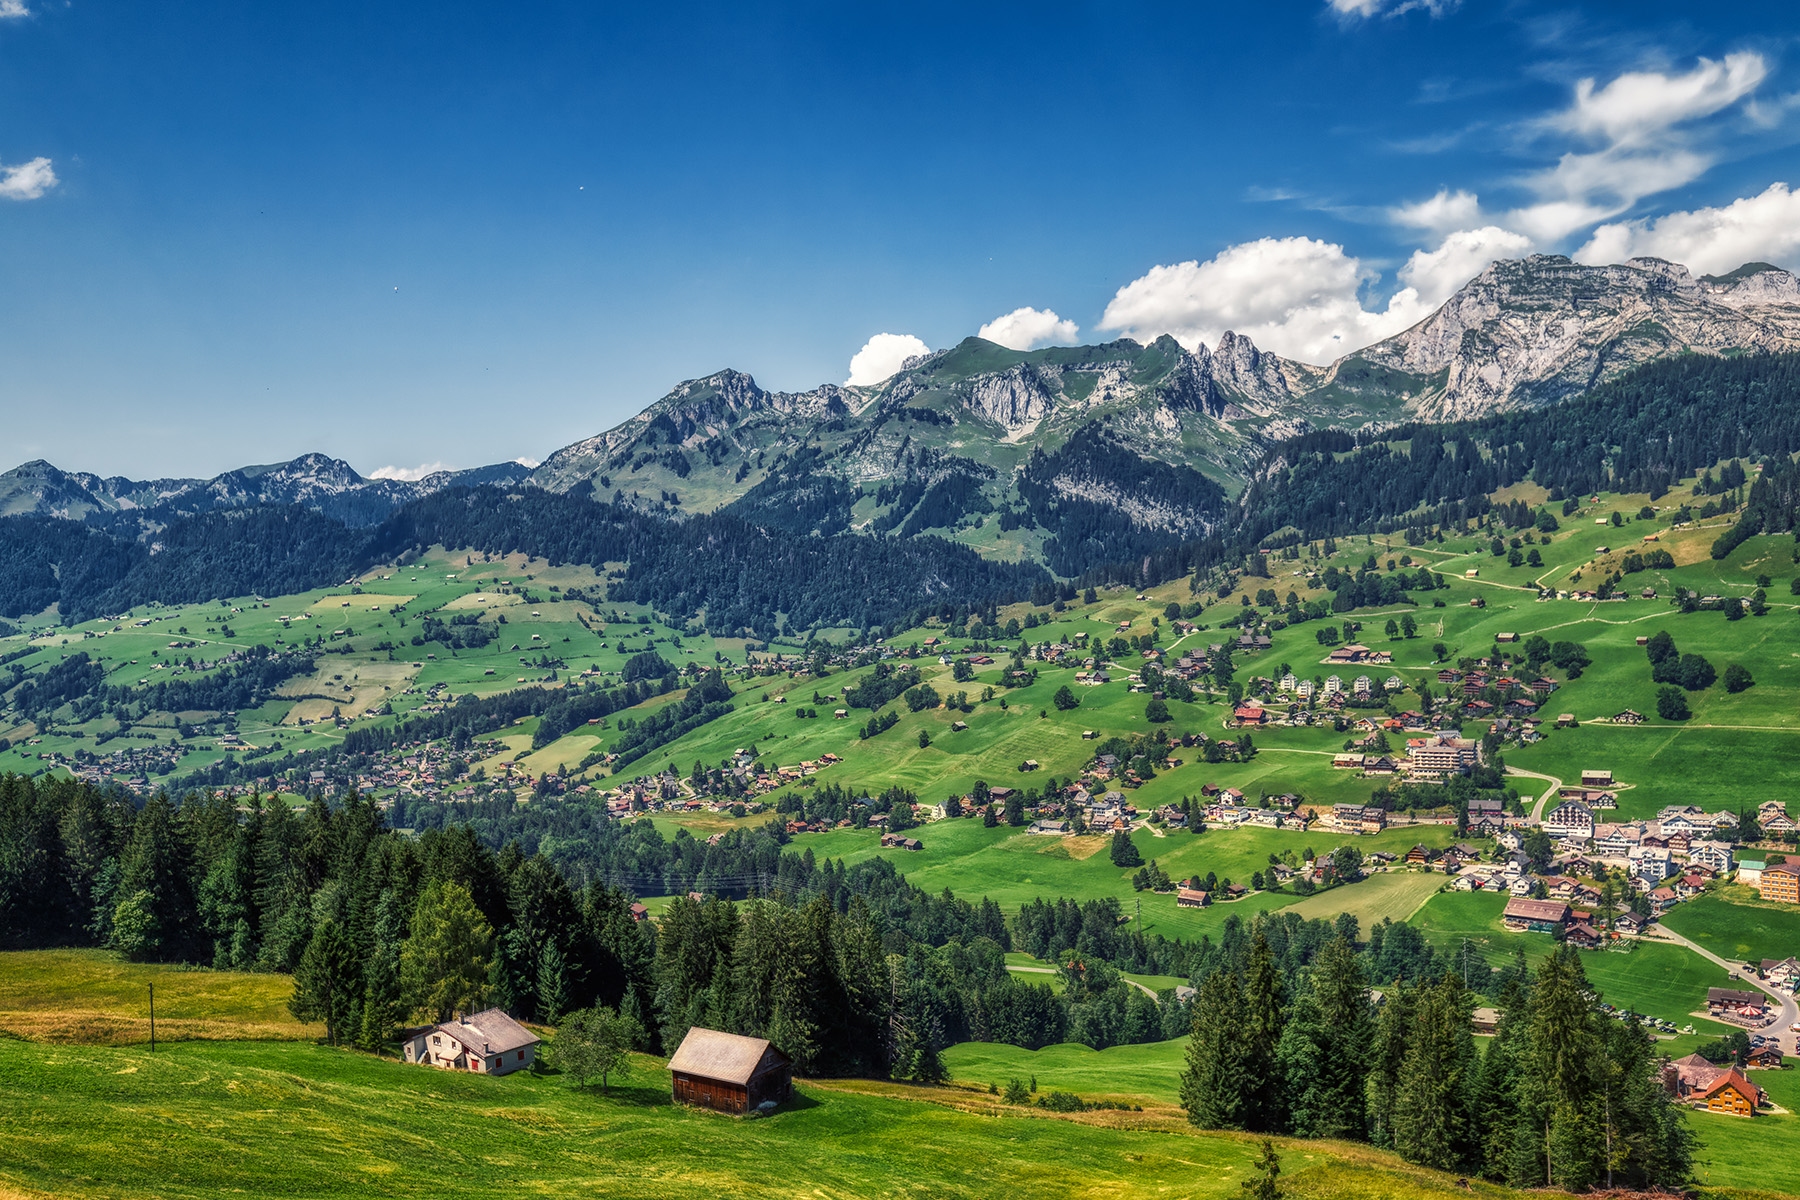 Best hikes in Switzerland: a view of the Swiss village of Toggenburg